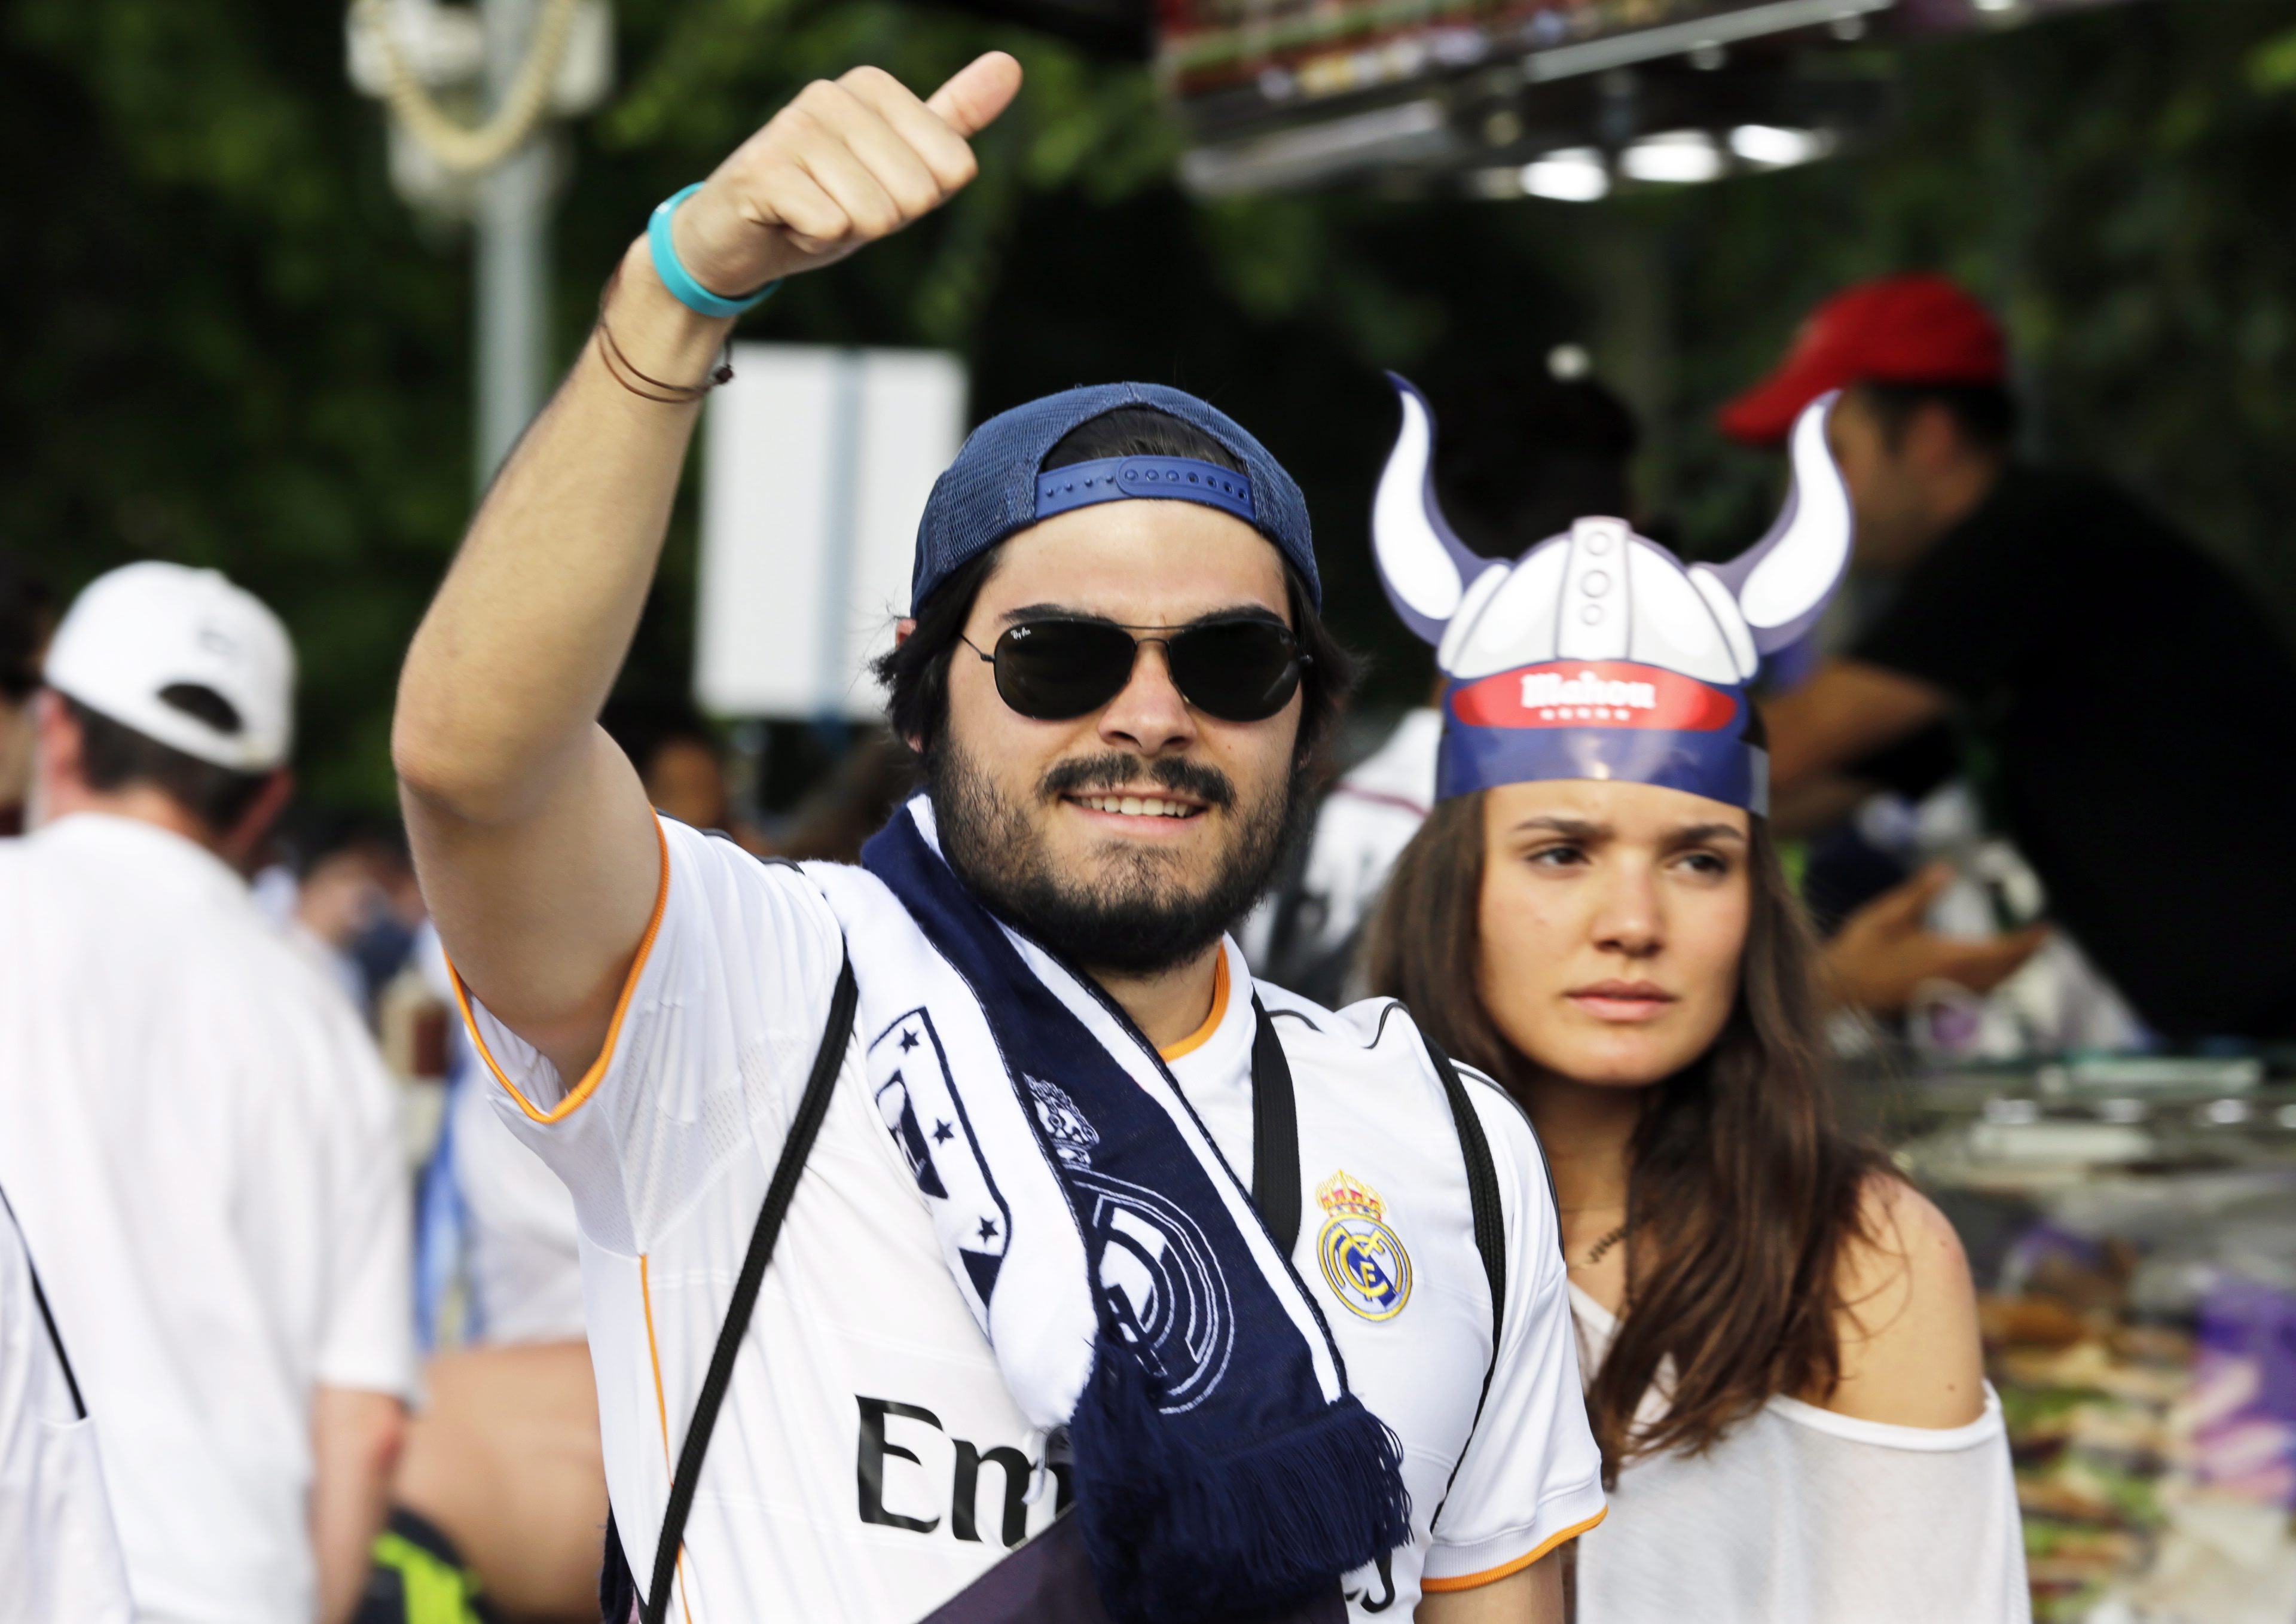 . Milan (Italy), 28/05/2016.- Real Madrid supporters arrive for the UEFA Champions League final between Real Madrid and Atletico Madrid at the Giuseppe Meazza Stadium in Milan, Italy, 28 May 2016. (Liga de Campeones, Italia) EFE/EPA/ARMANDO BABANI